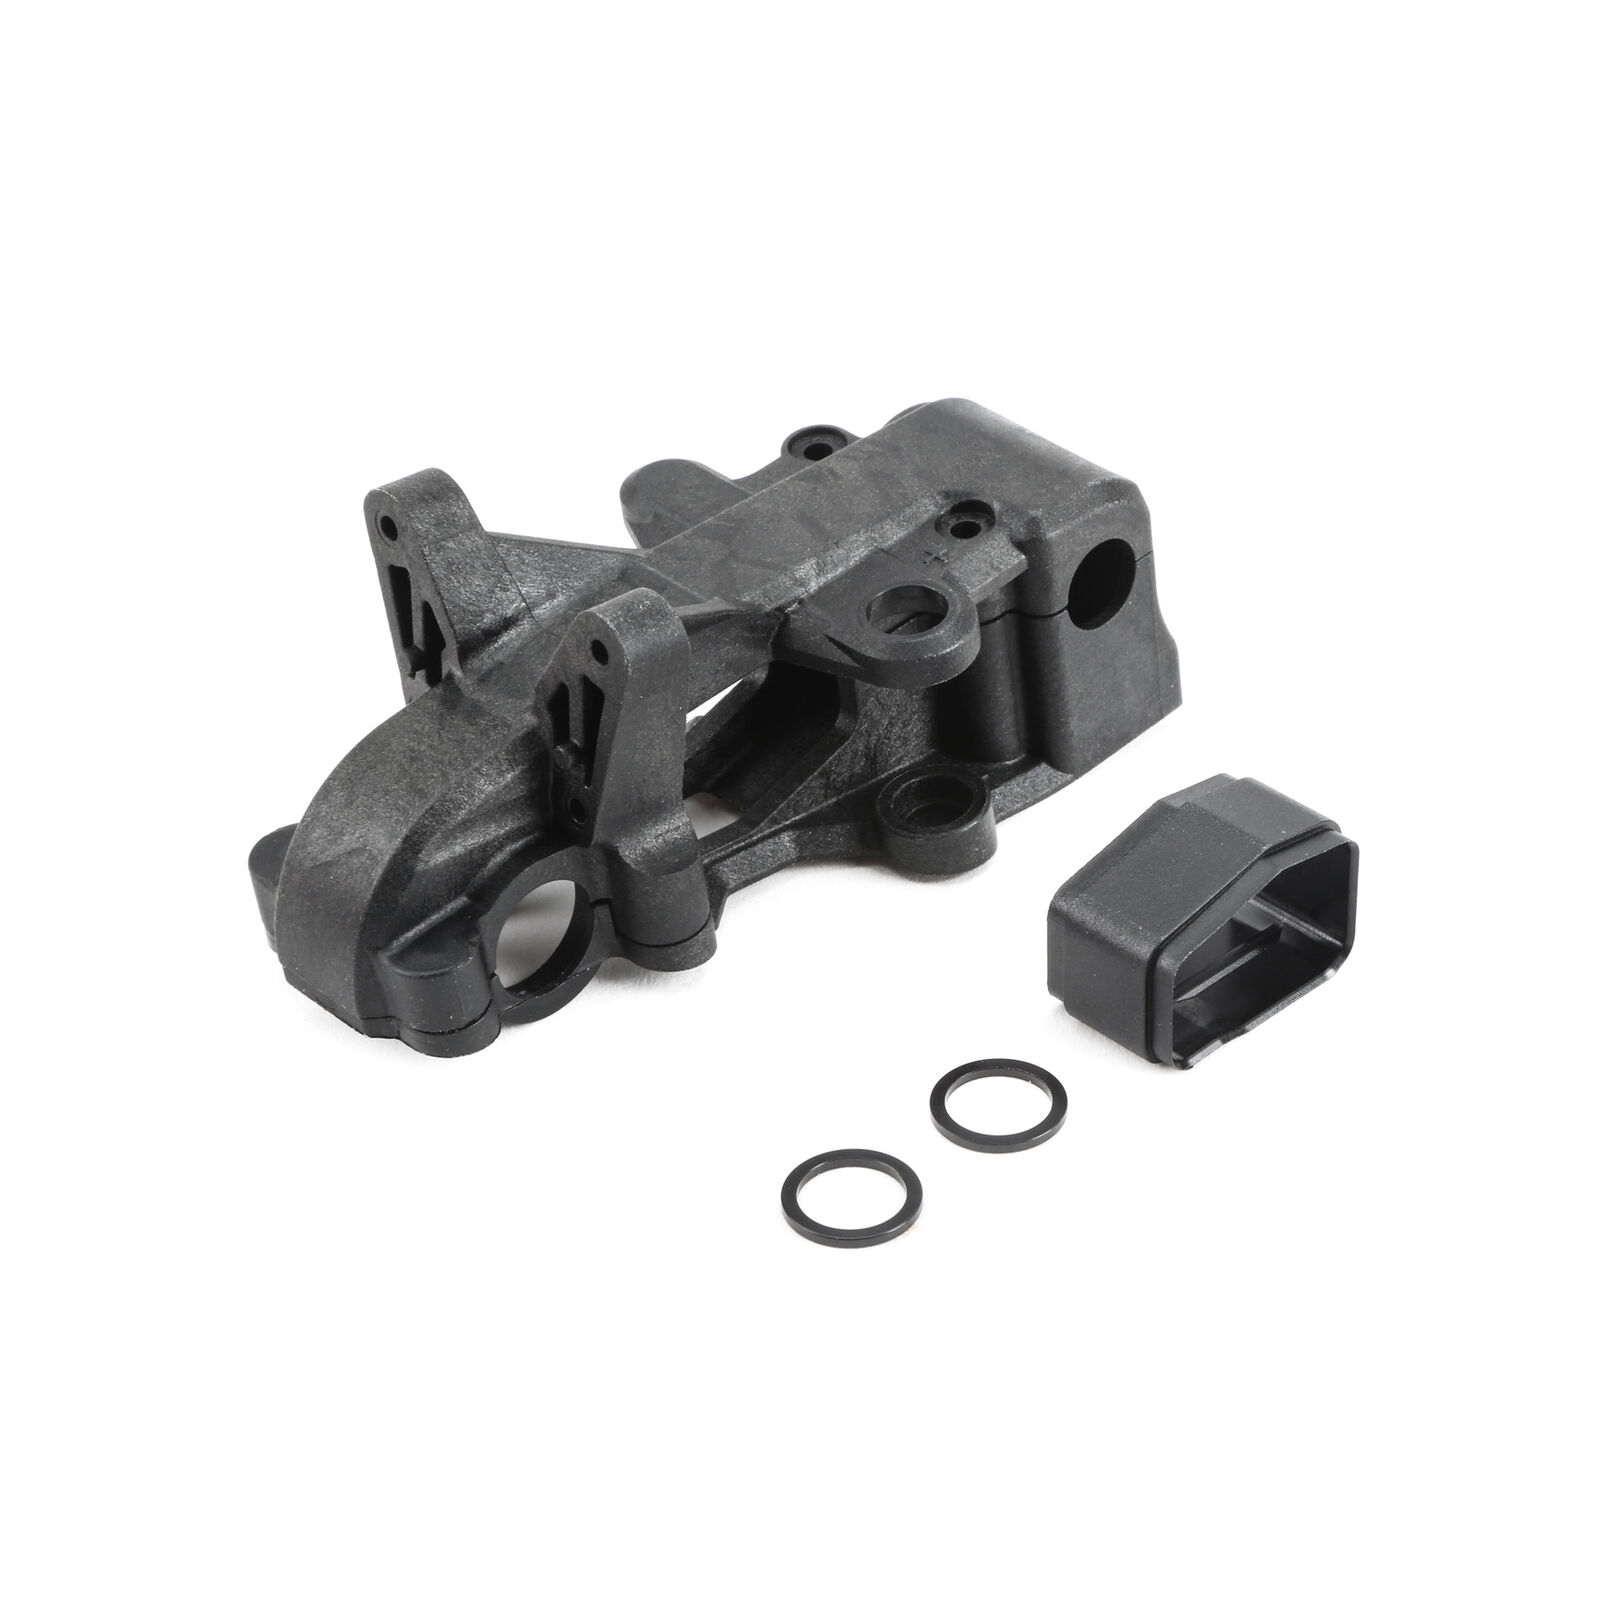 Front Belt Cover and Sub Frame: 22-4 2.0